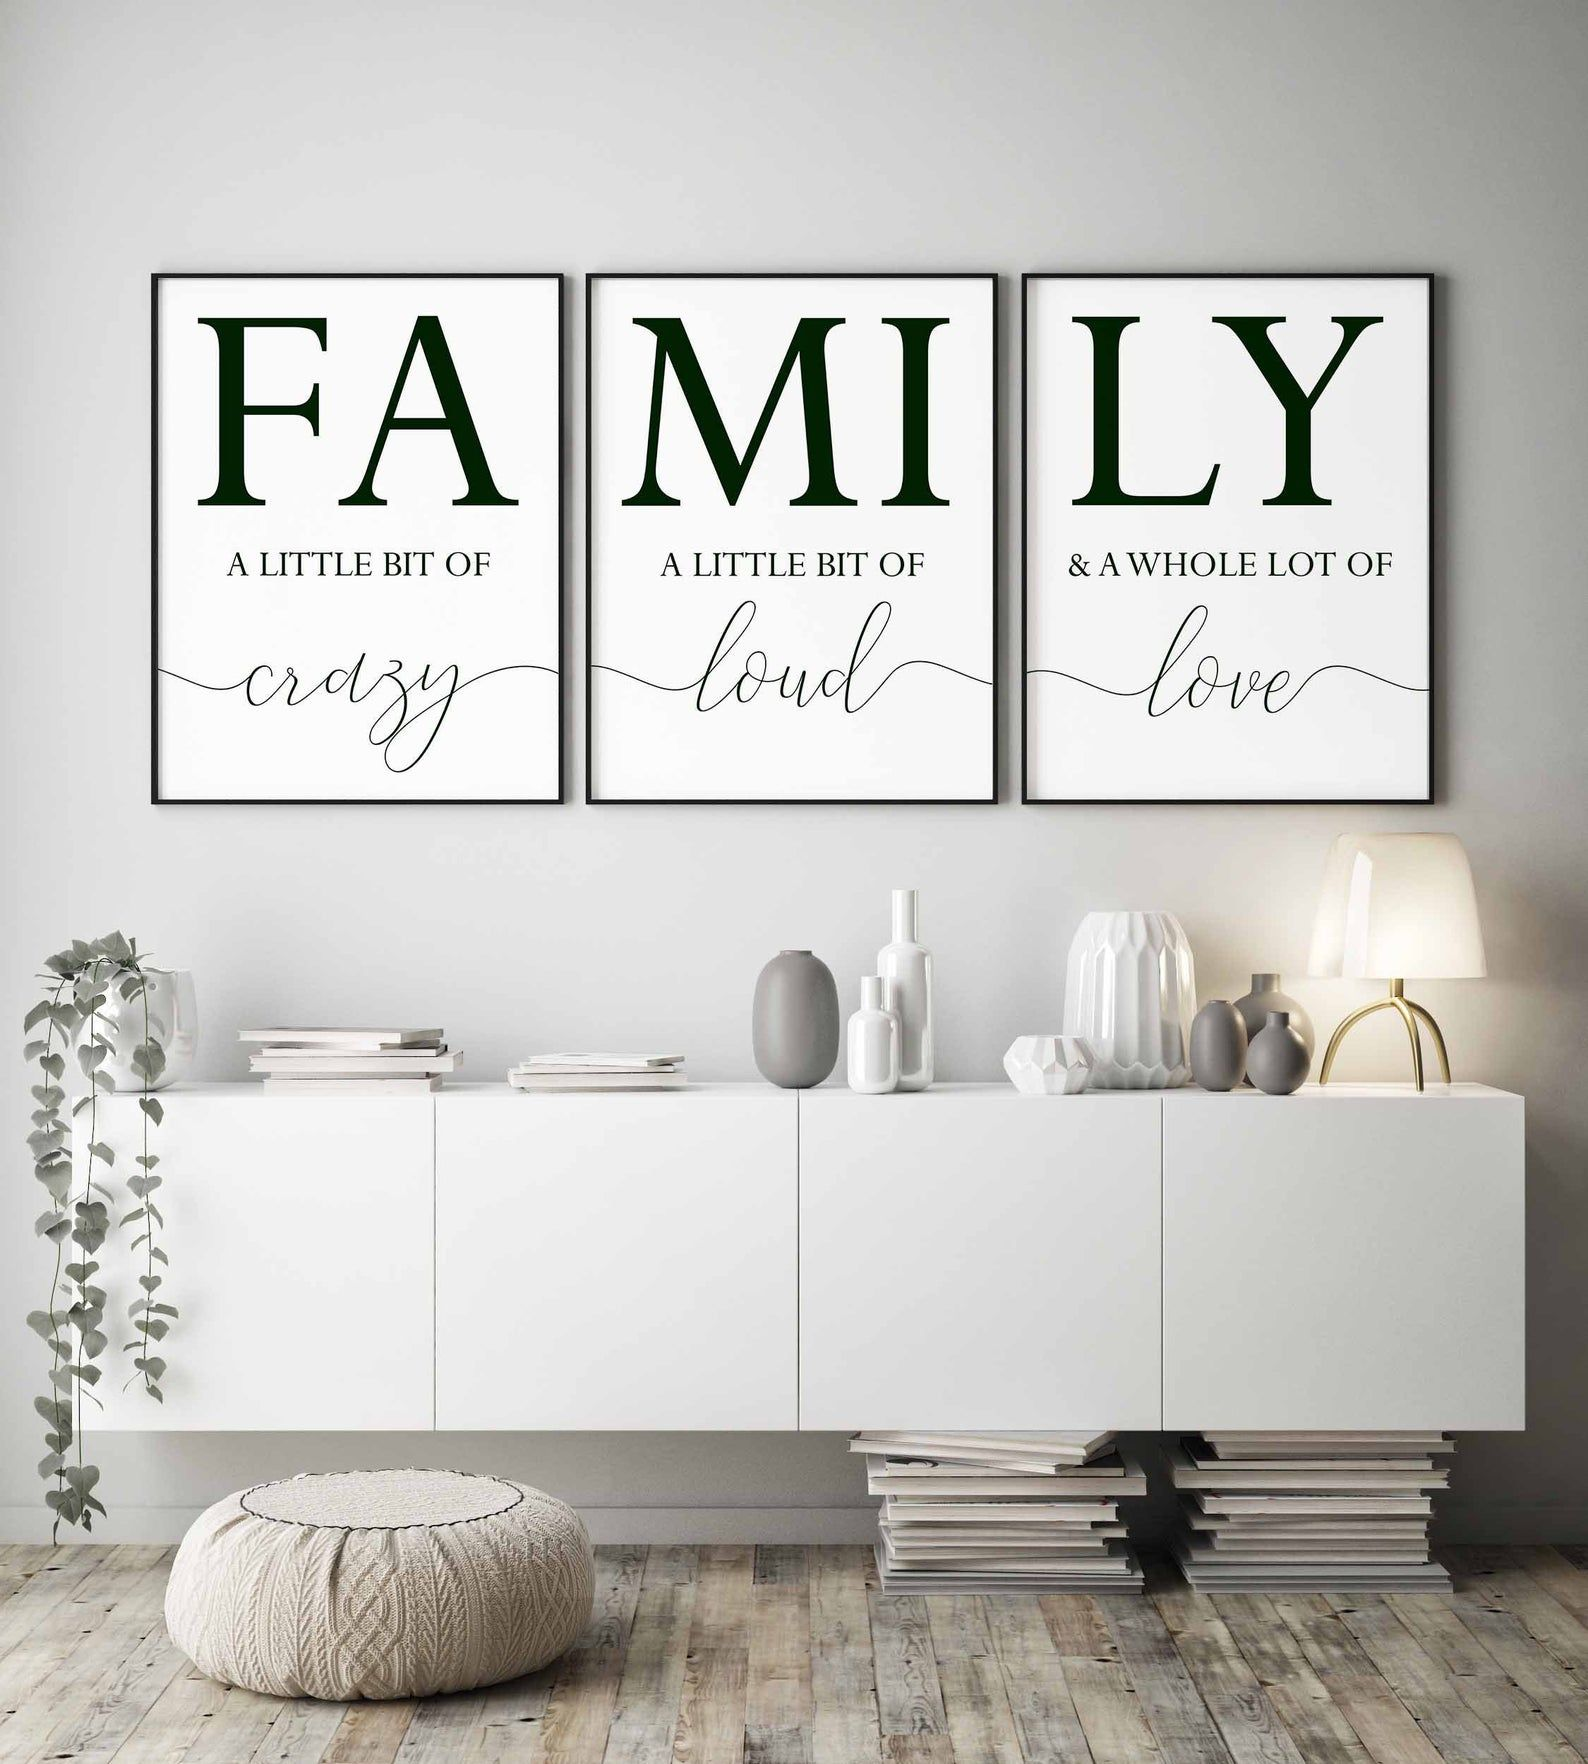 Family Signfamily A Little Bit Of Crazy Printset Of 3 Etsy Family Room Walls Wall Decor Bedroom Room Wall Decor